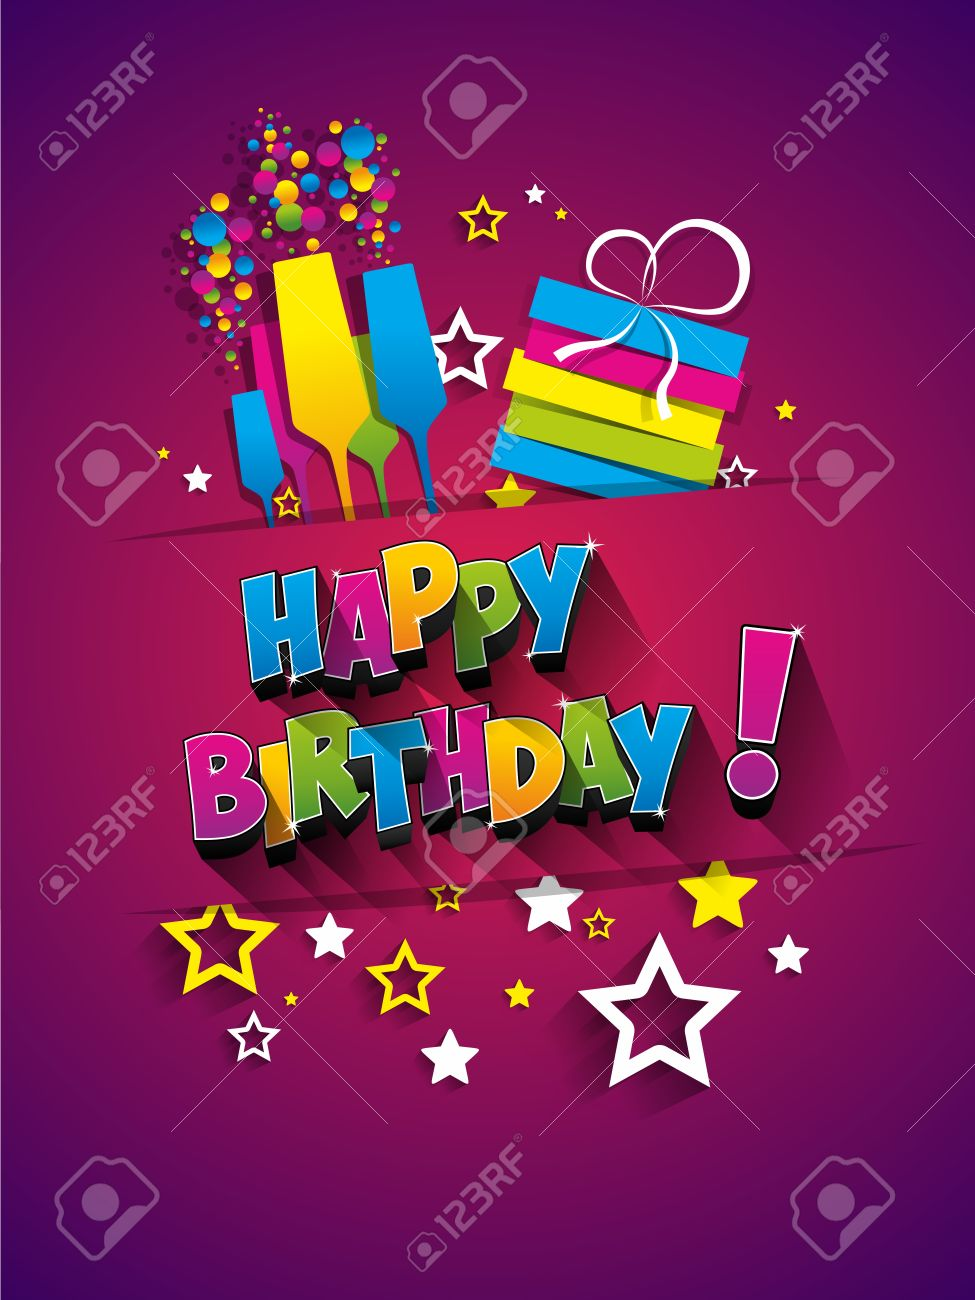 happy birthday wishes in a card ; 49170562-happy-birthday-greeting-card-on-background-vector-illustration